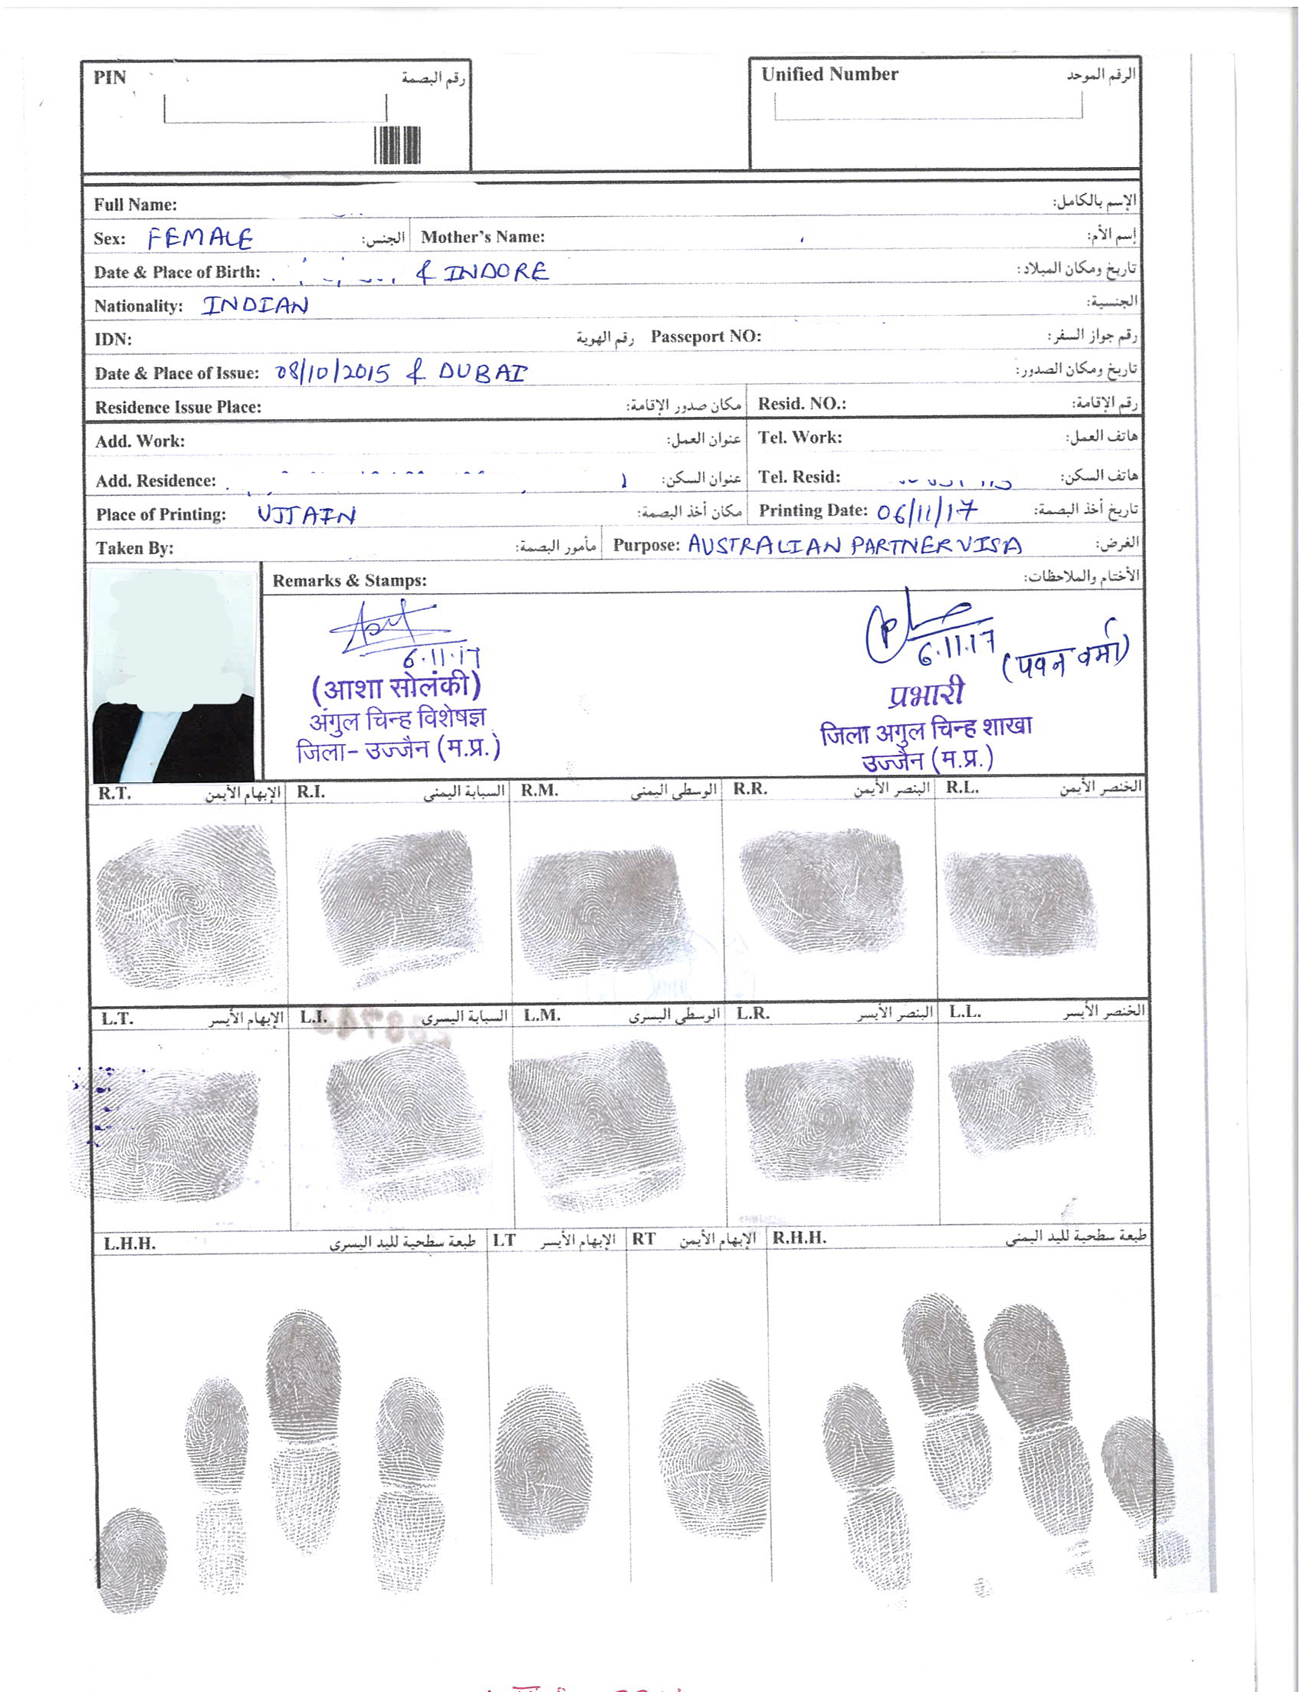 visaprocessUAE: Police Clearance Certificate (PCC) from